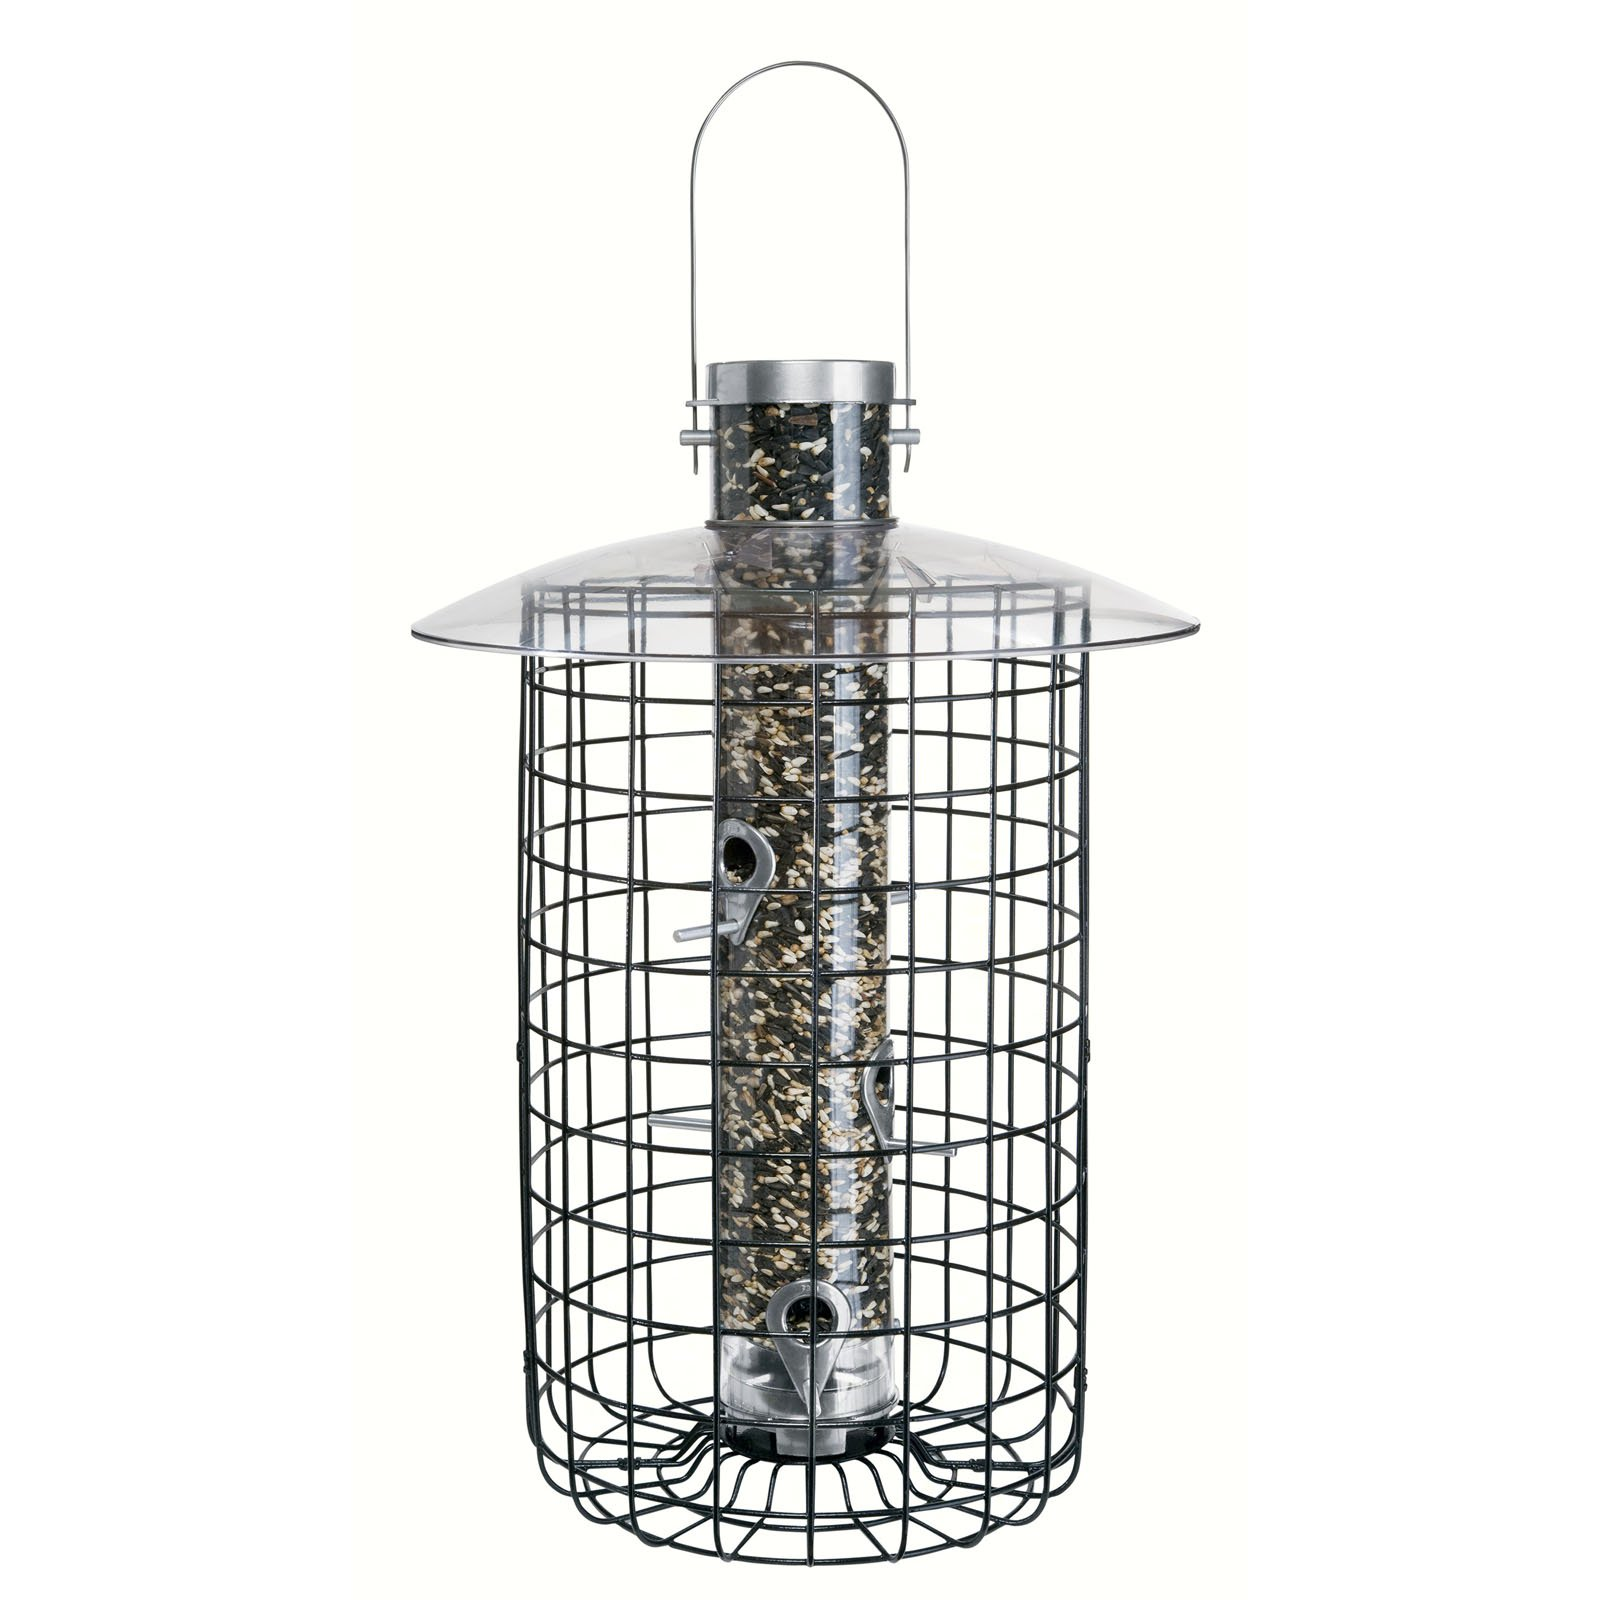 Droll Yankees B7 Domed Cage Feeder